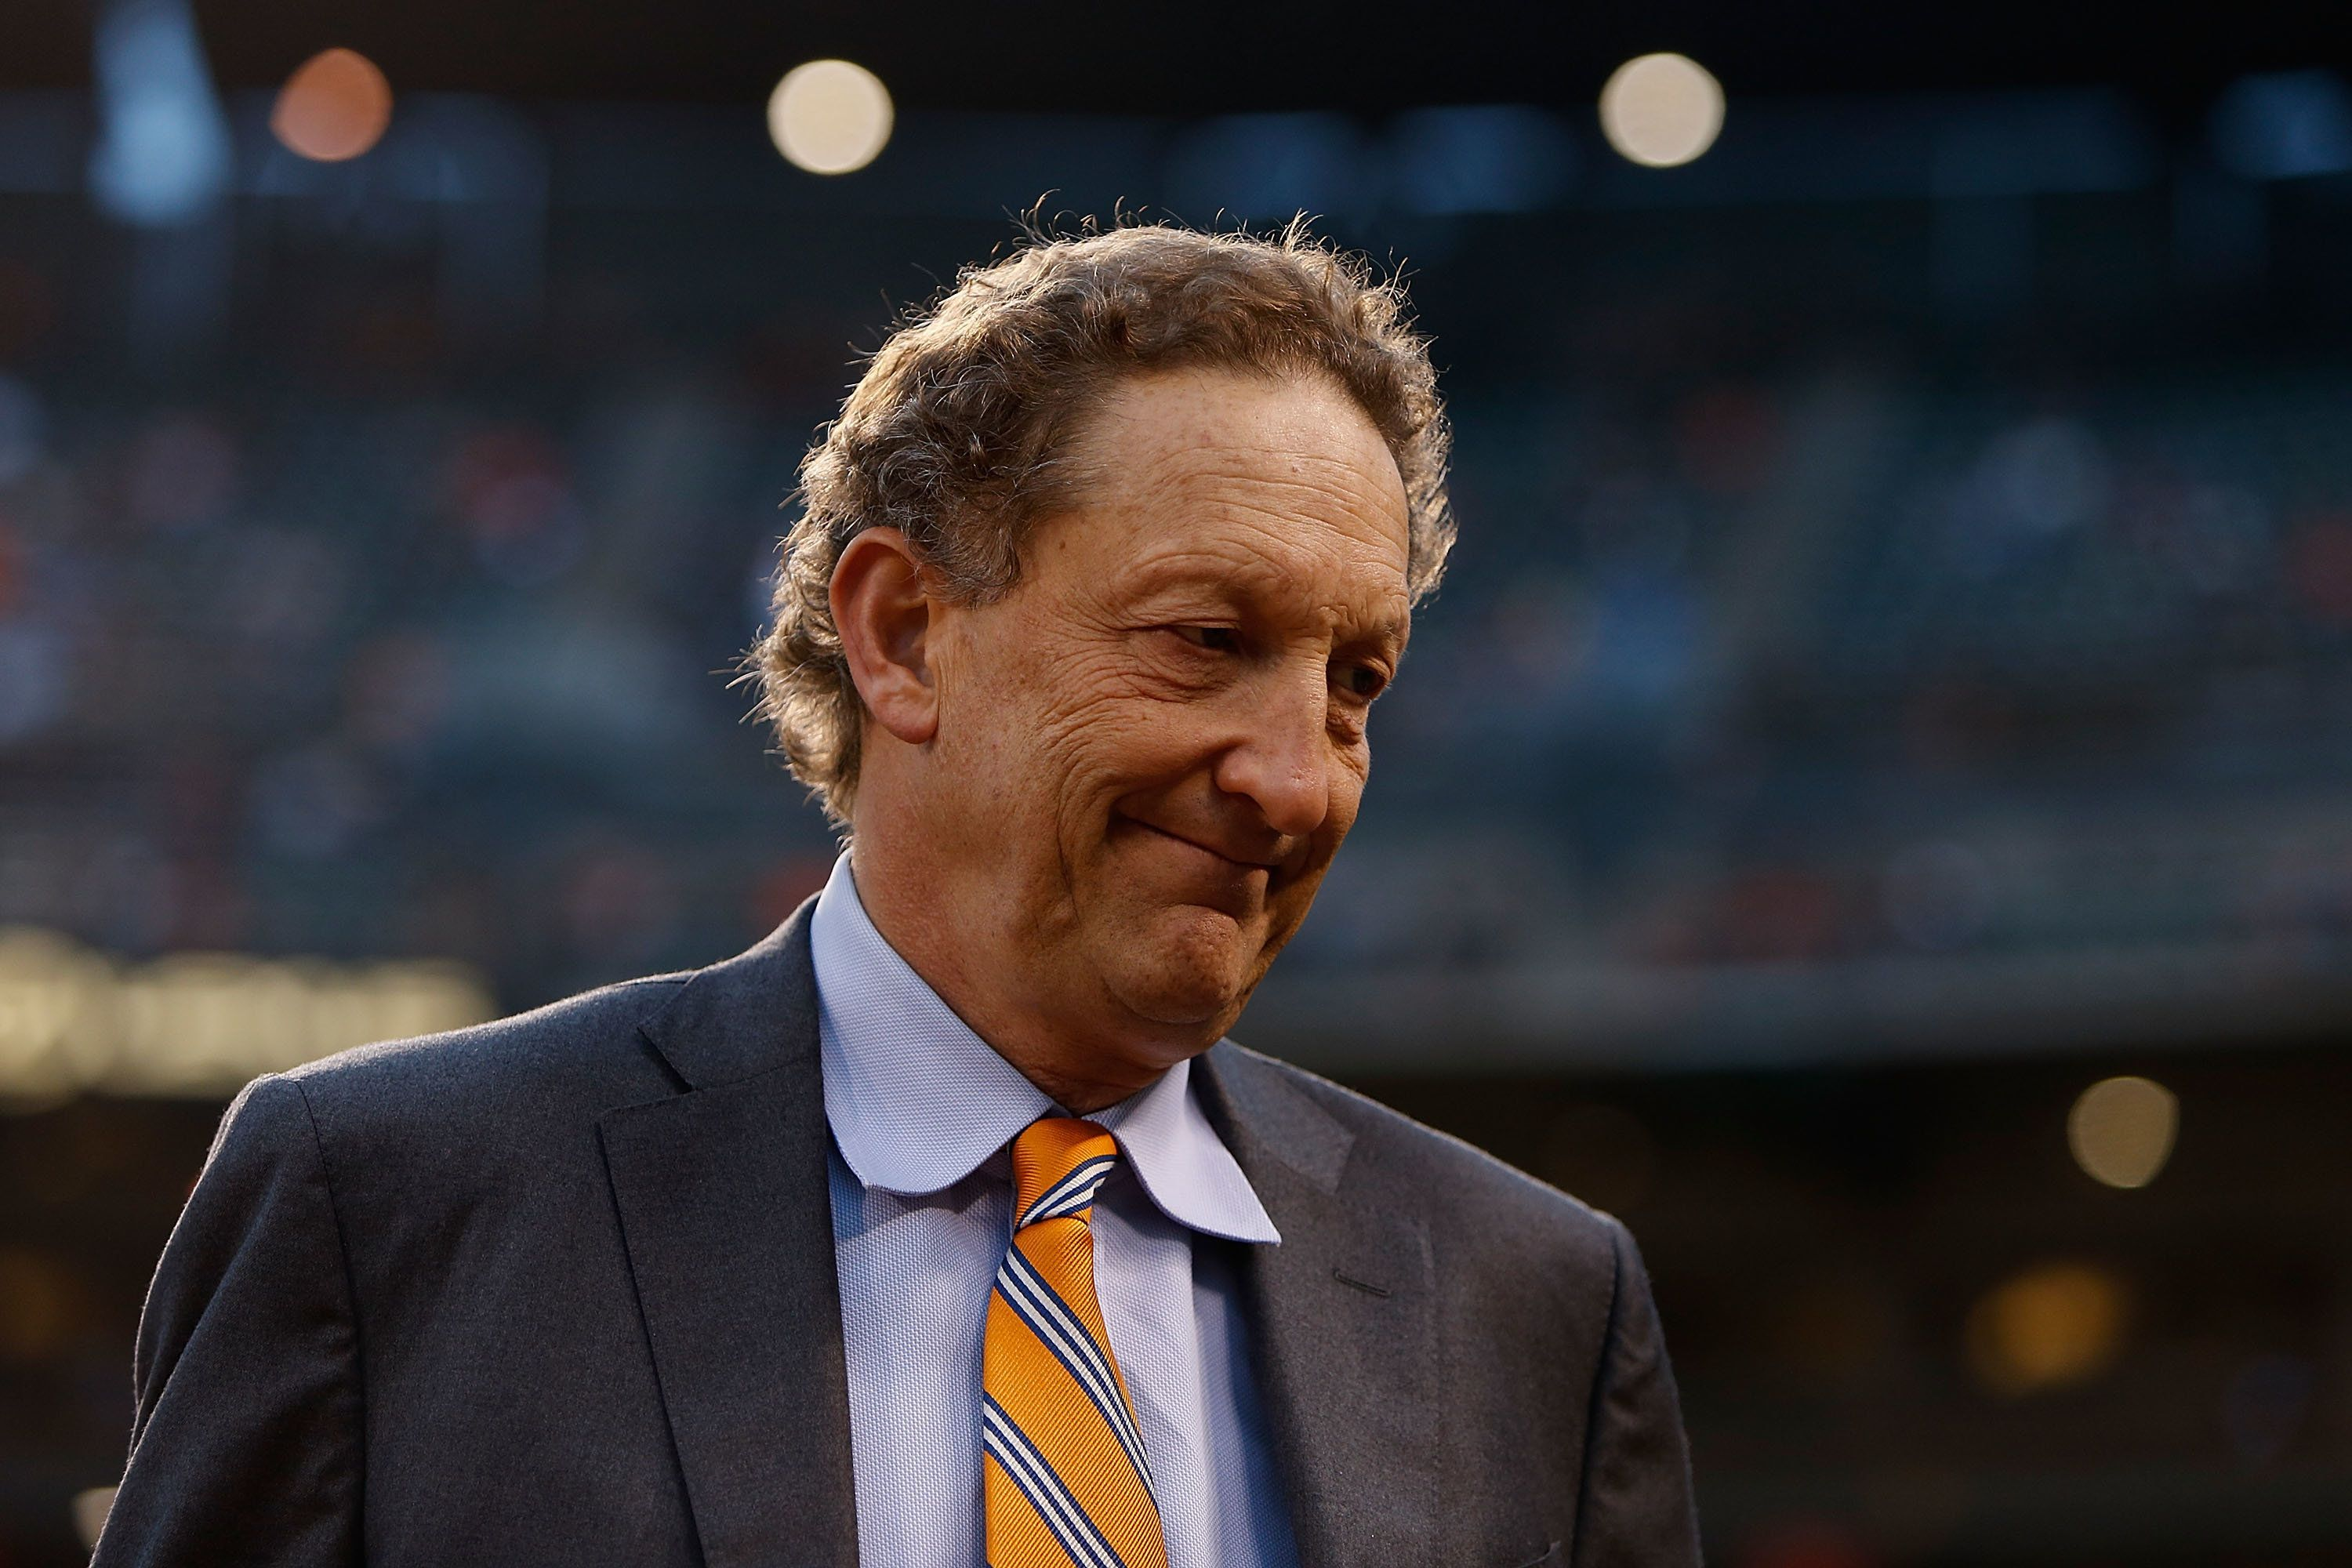 Larry Baer, the president and CEO of the San Francisco Giants, has been suspended without pay.